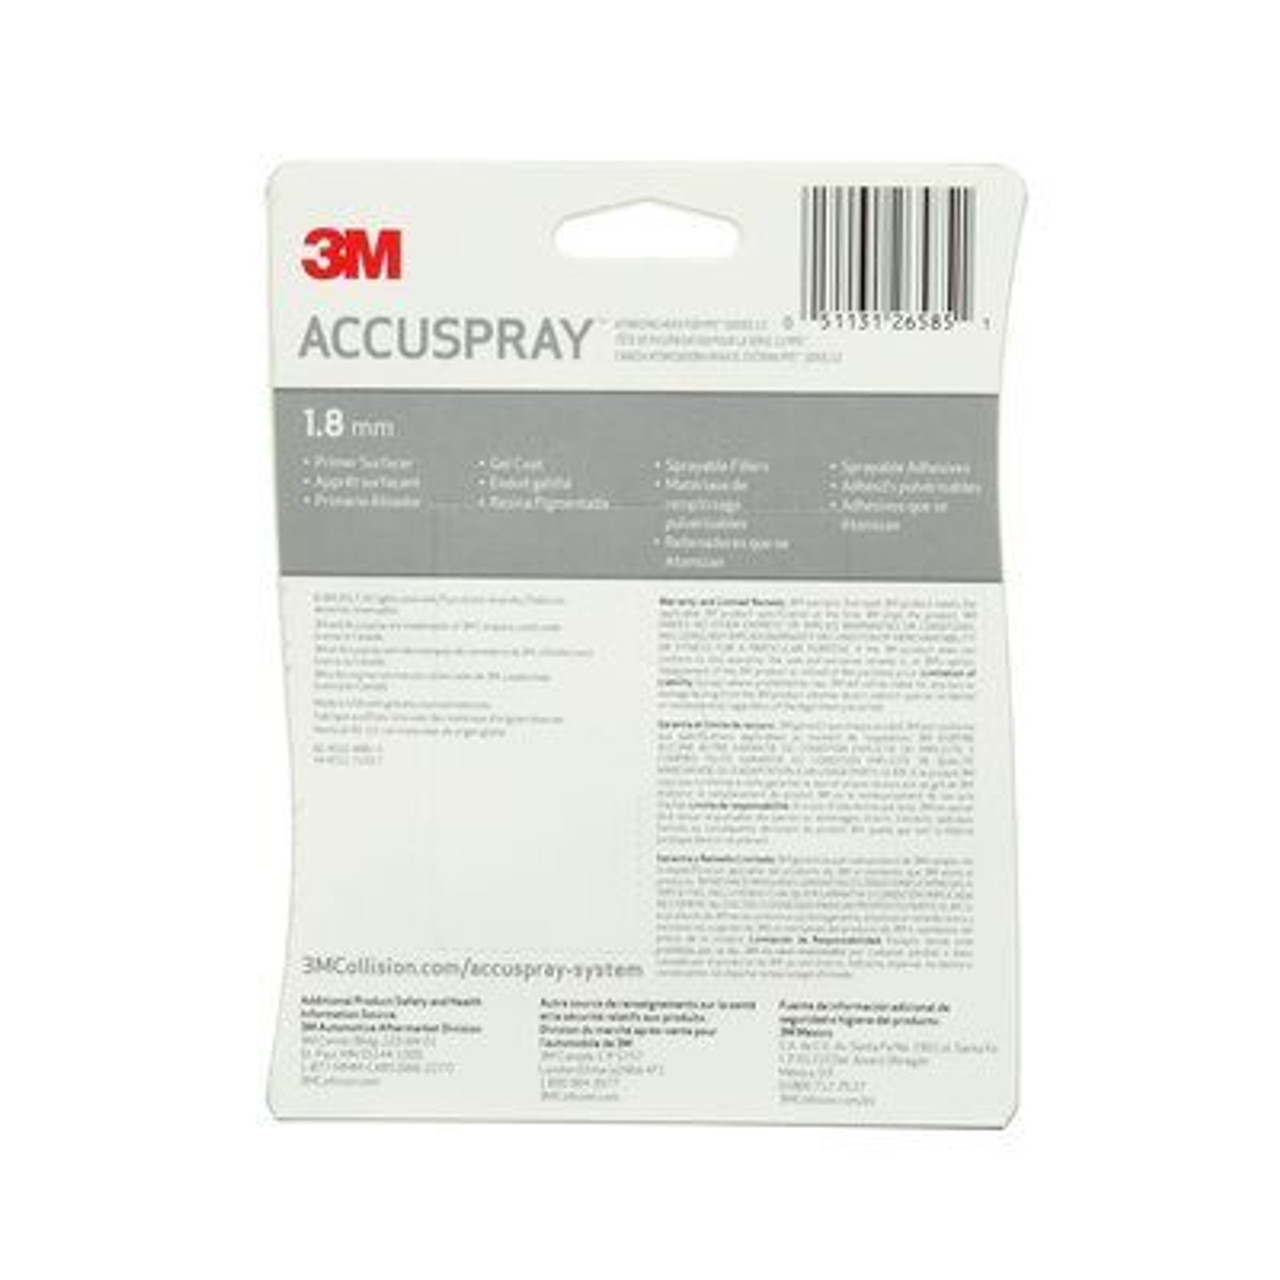 3M™ Accuspray™ Atomizing Head Refill Pack for 3M™ PPS™ Series 2.0, 26585, Clear, 1.8 mm, 5 per case